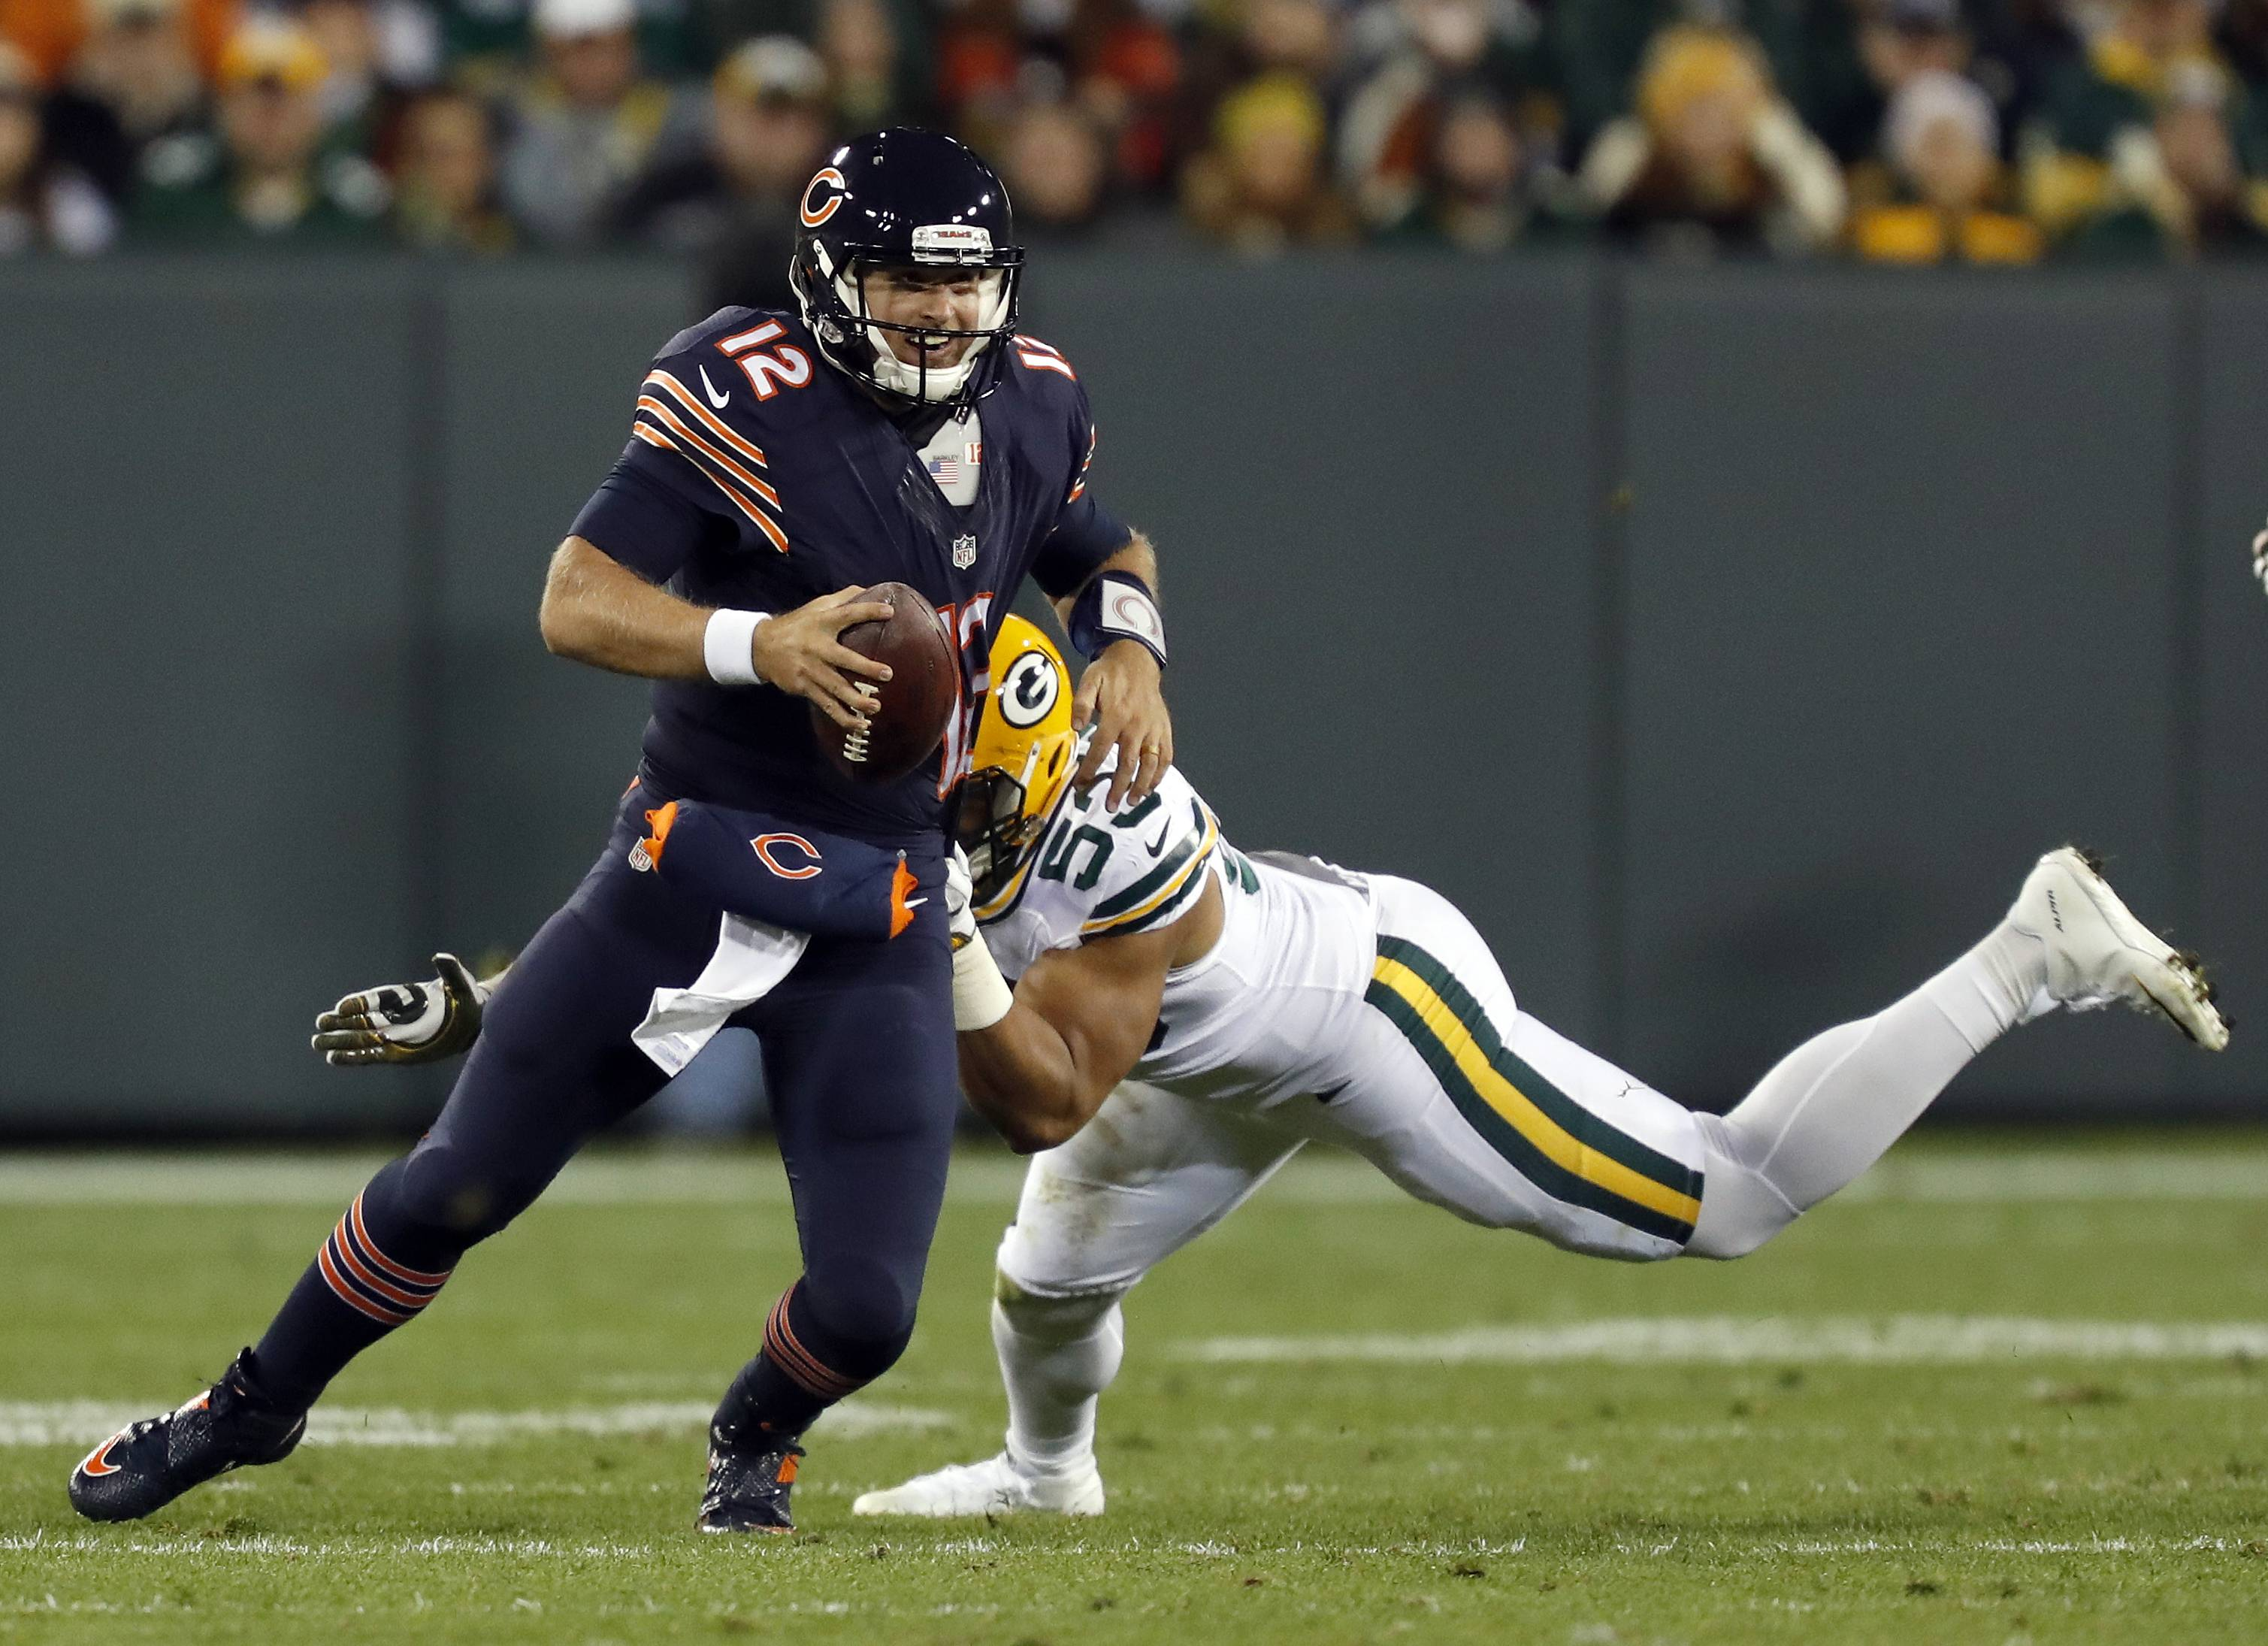 Chicago Bears quarterback Matt Barkley has never started a game during his NFL career, but he may get his first one against a tough Minnesota defense on Halloween if Jay Cutler still isn't medically cleared.